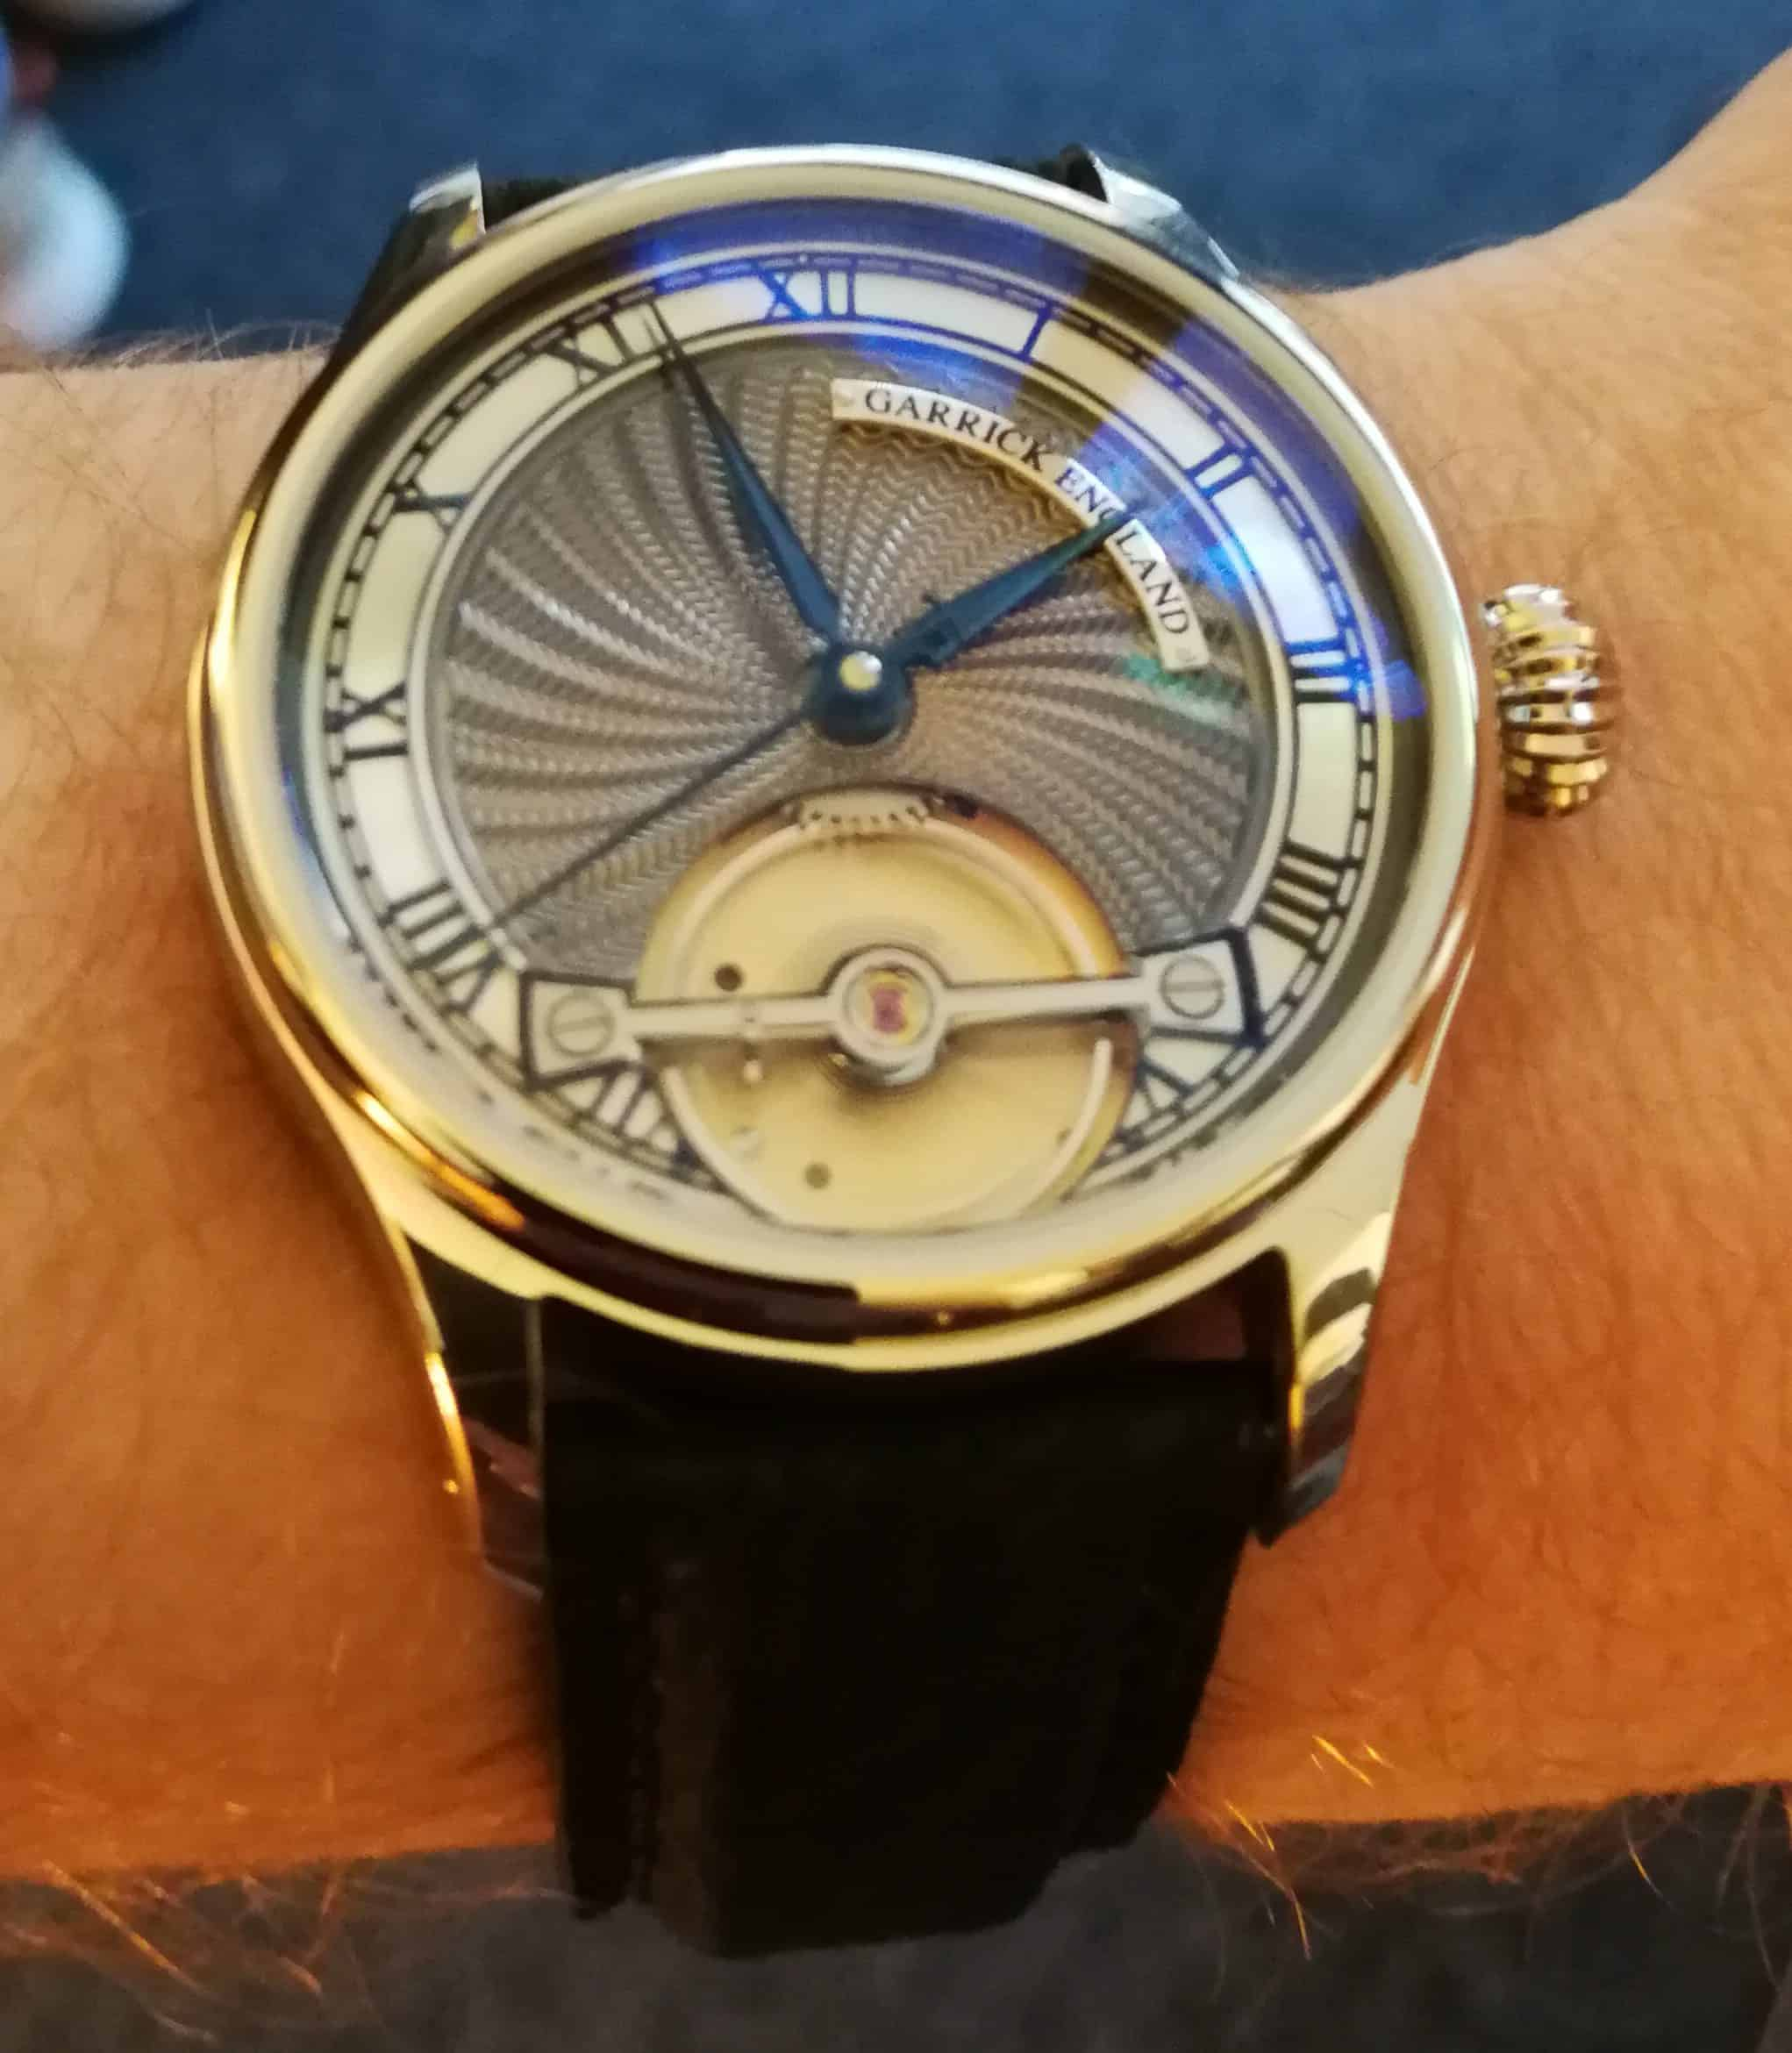 Garrick England S2 on the wrist